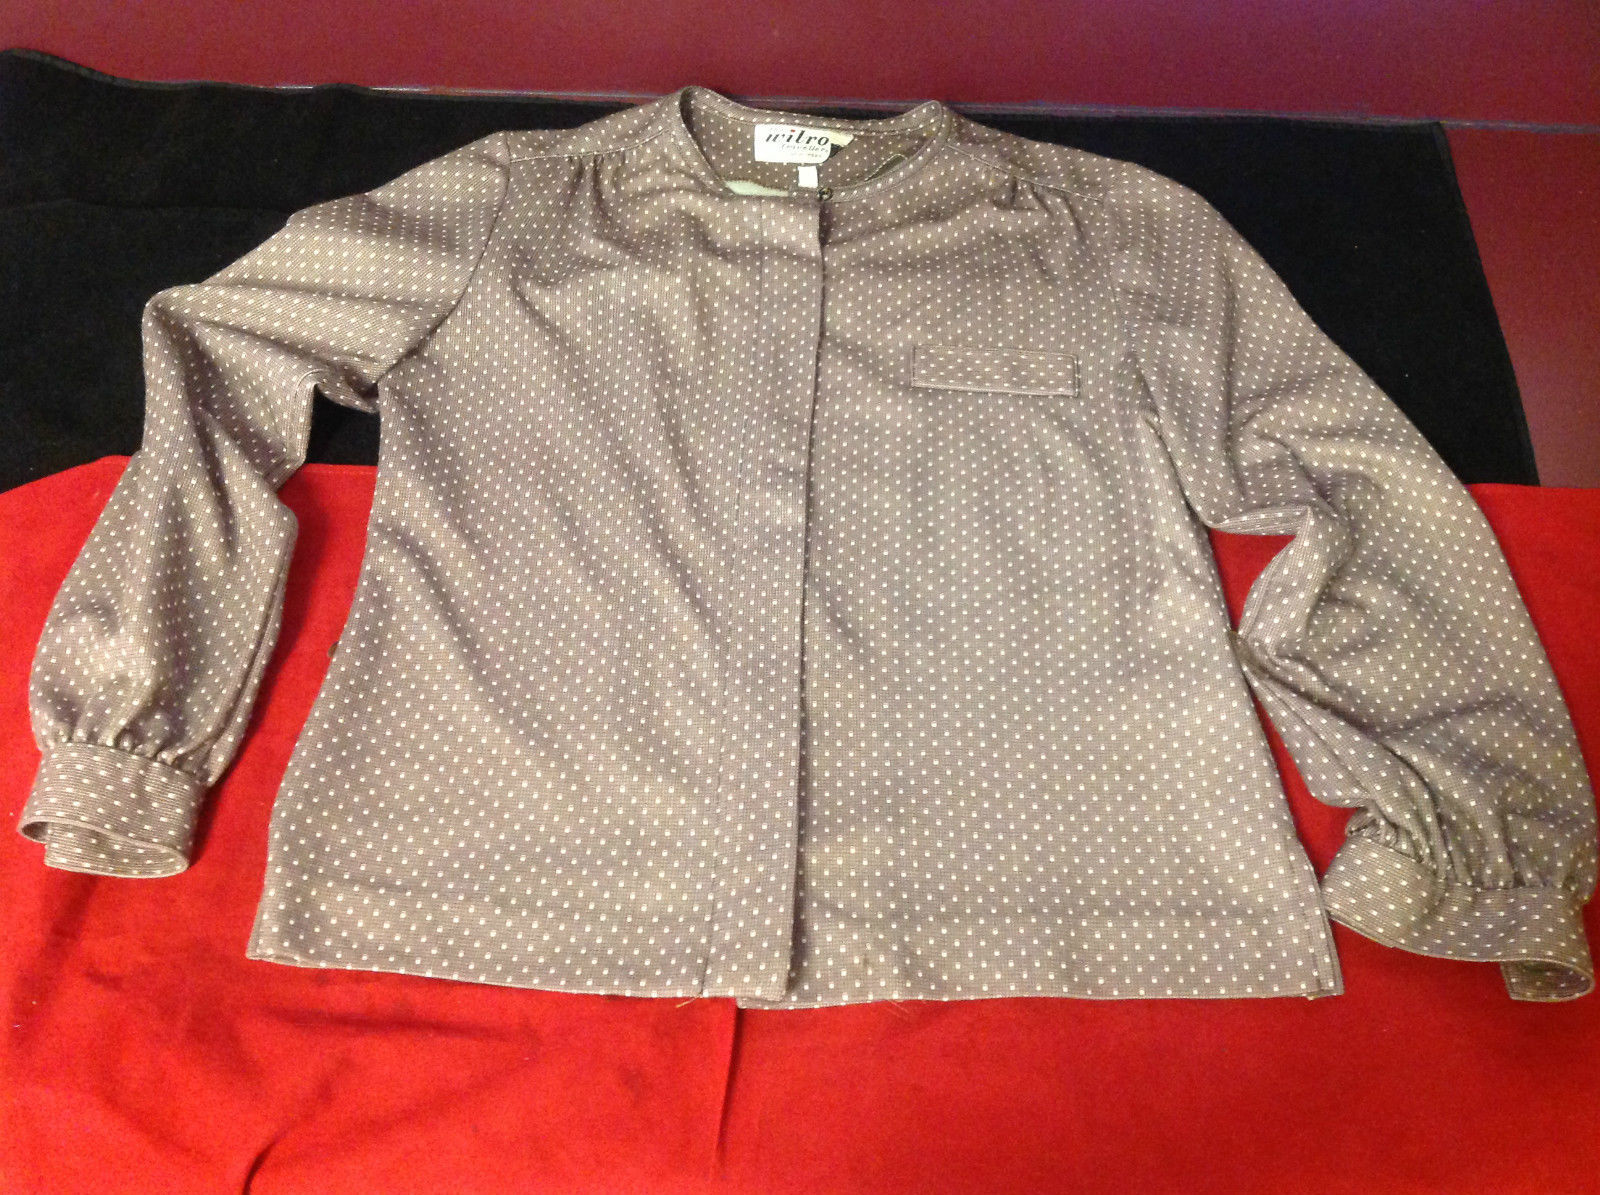 Wilroy Travelers Long Sleeve Brown Cream Polka Dot Blouse Size 10